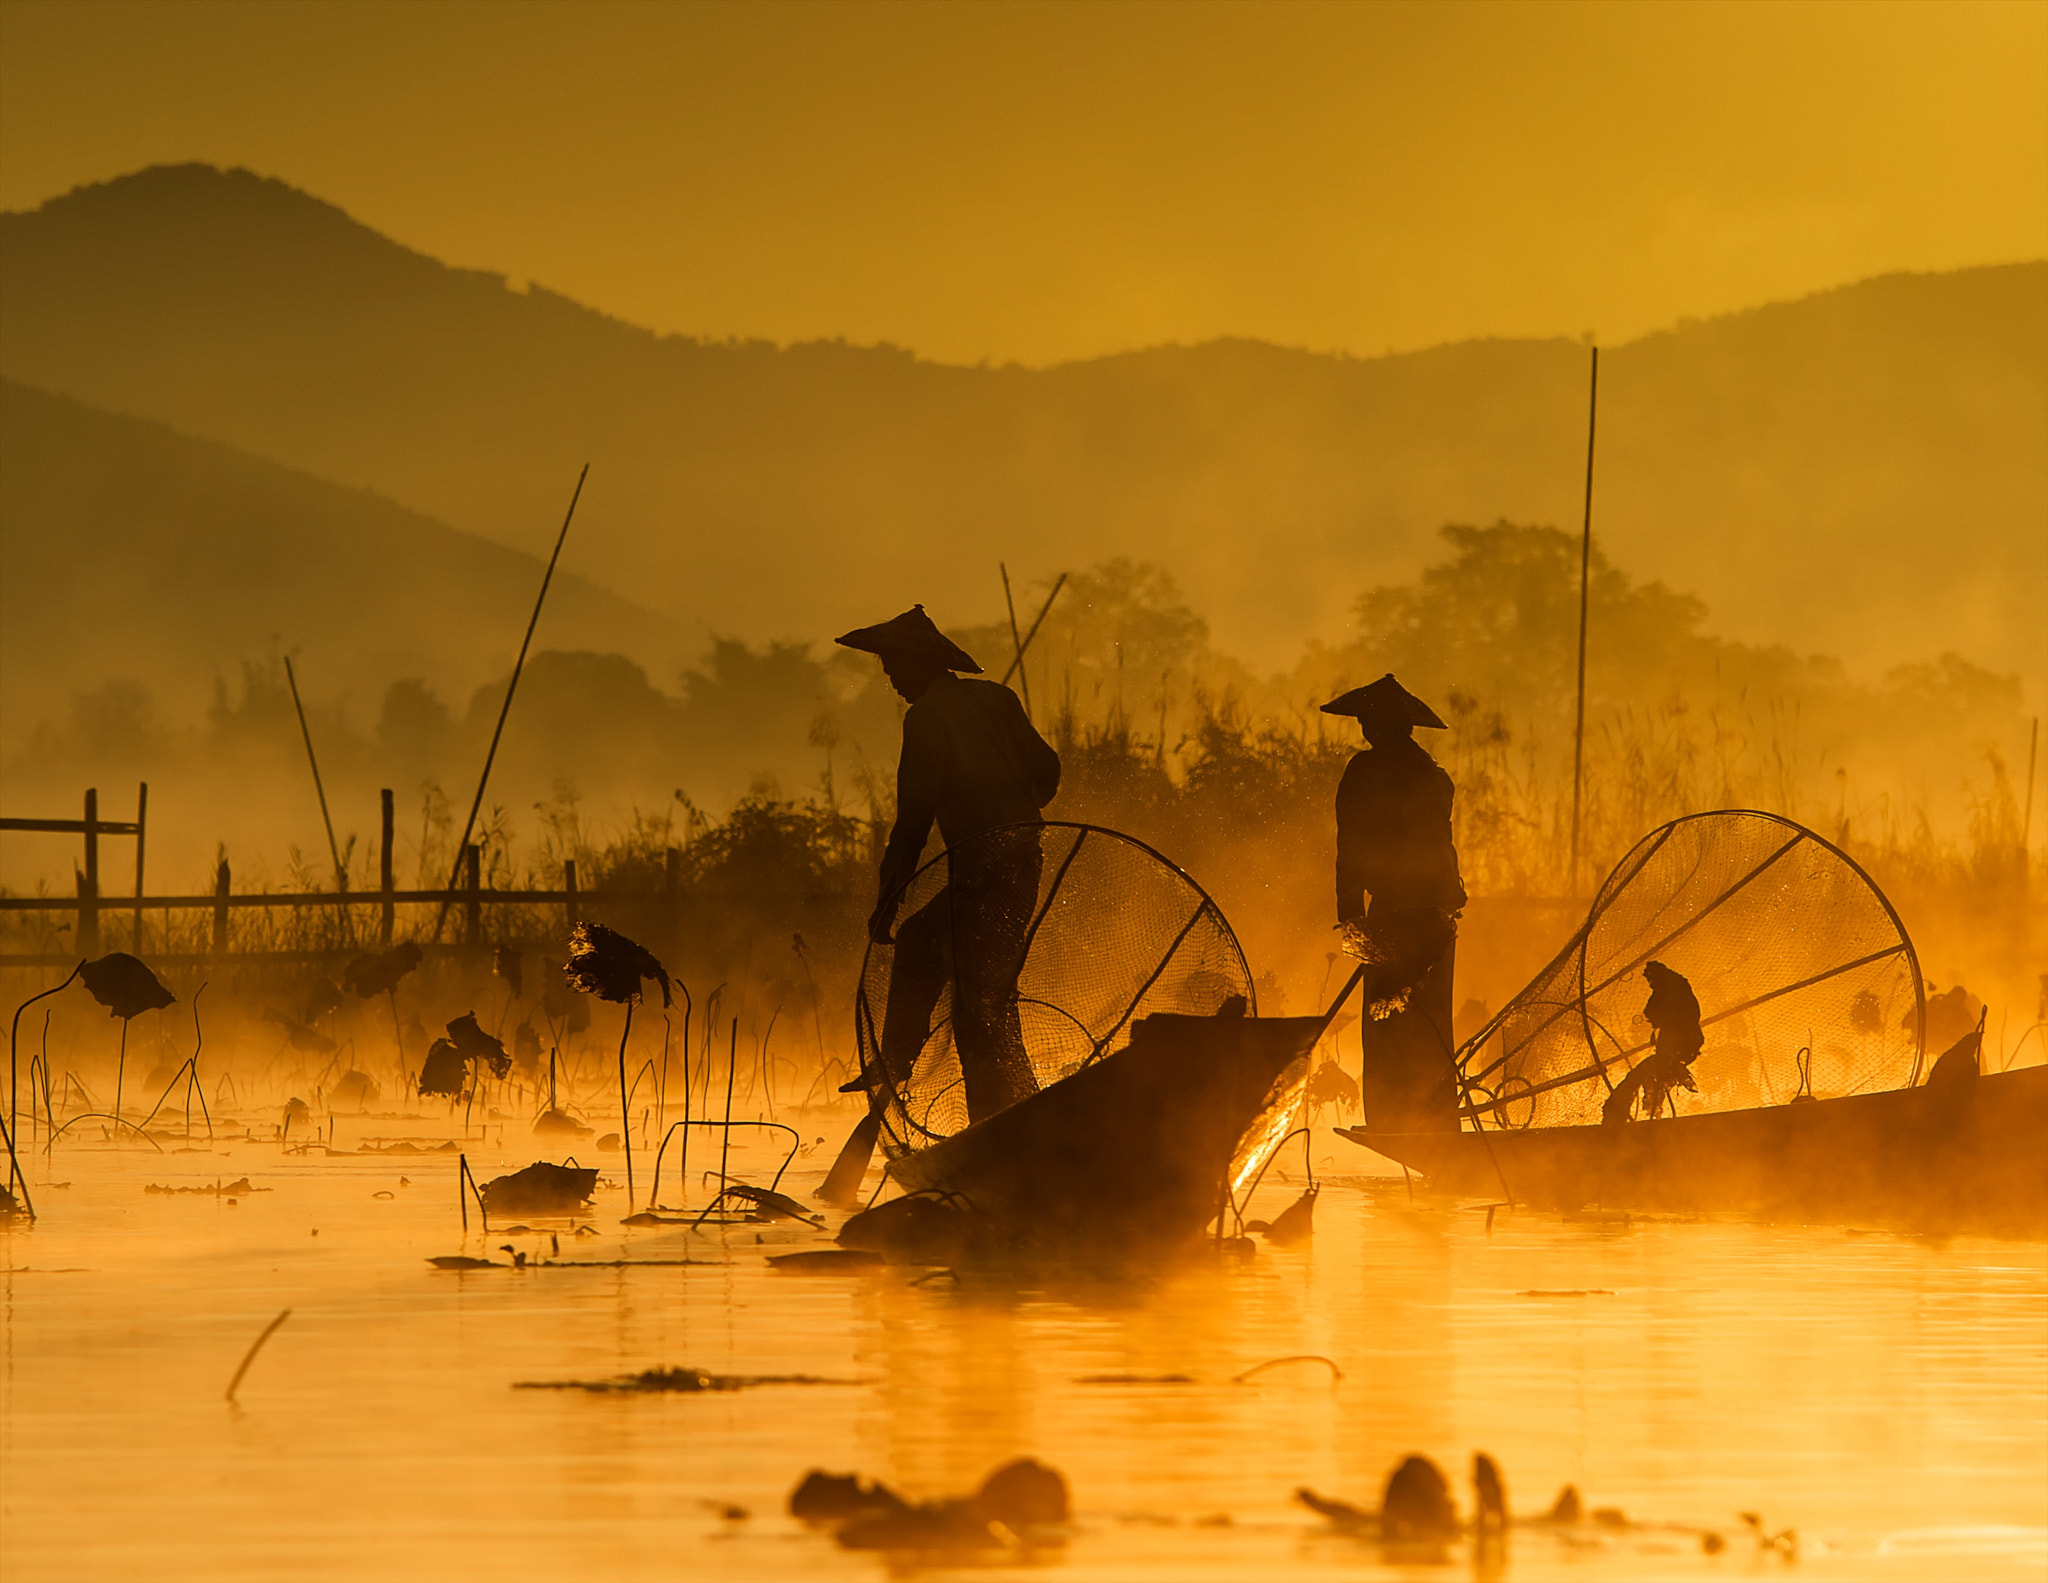 Photograph fishing @ inle lake (2) by hamni juni on 500px